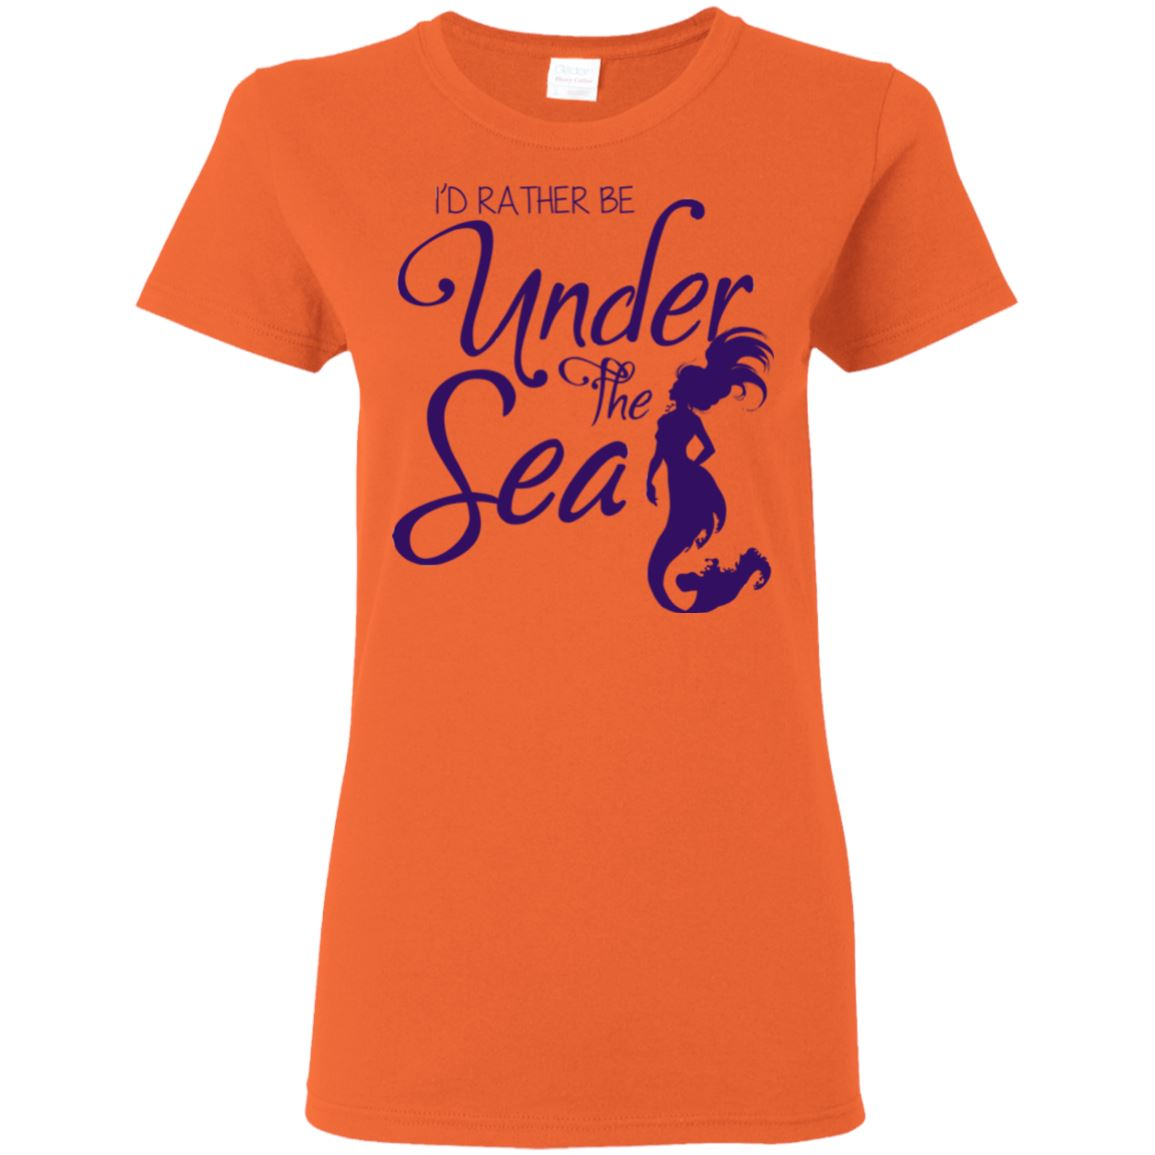 I'd Rather Be Under The Sea Ladies T-Shirt Mermaid Apparel Orange S